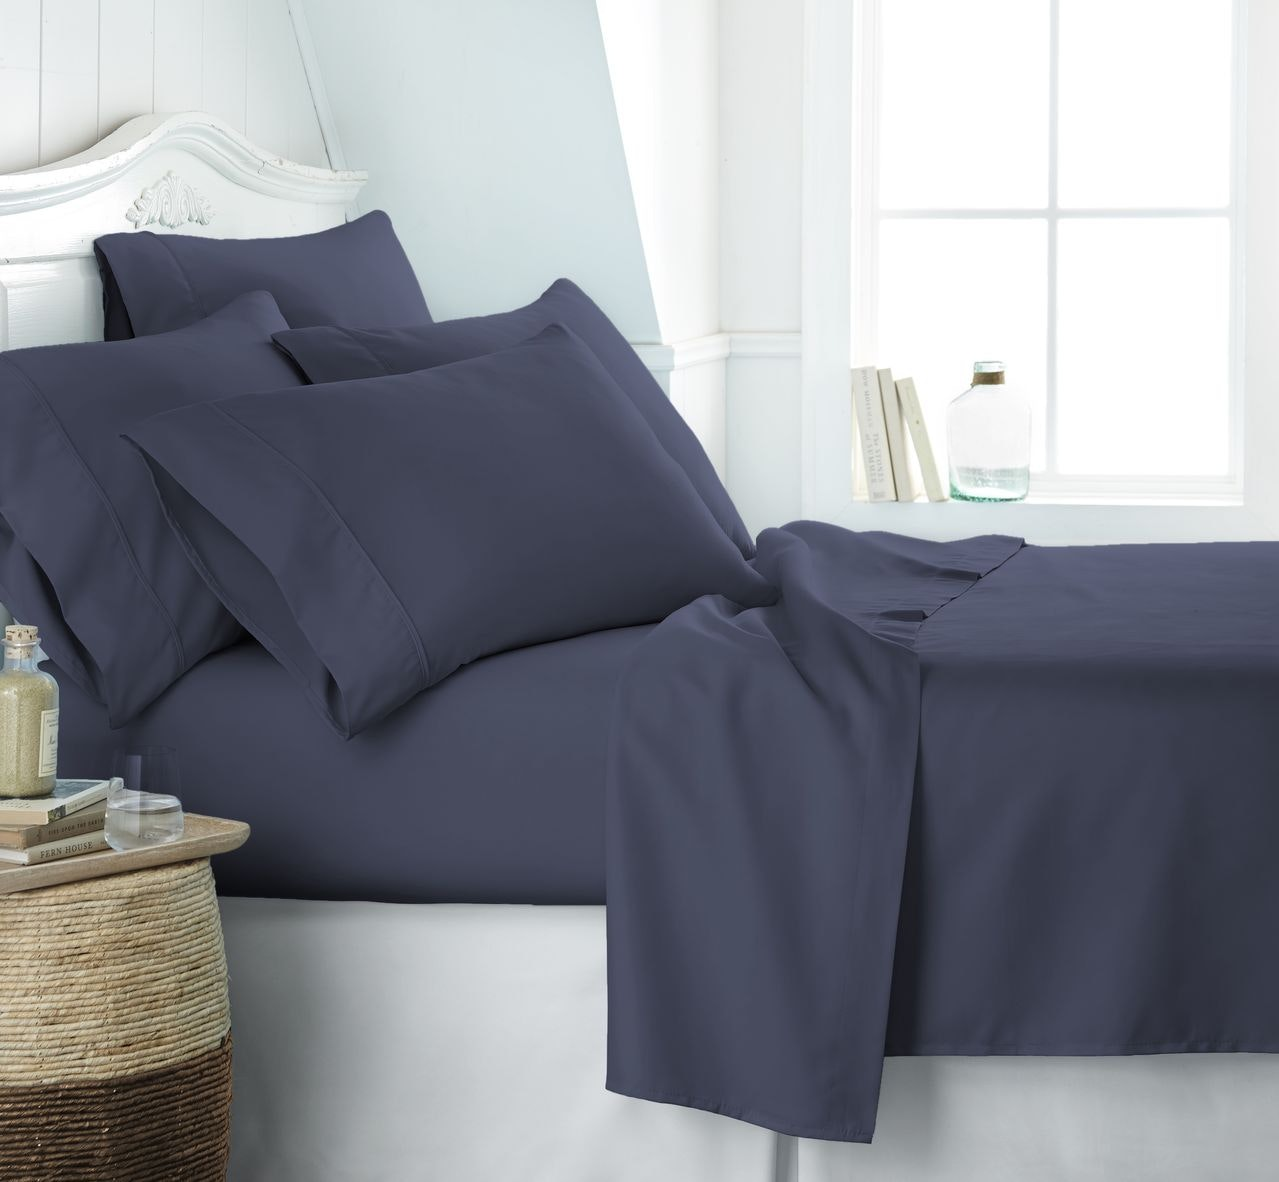 Luxury Linens™ Premium Ultra Soft 6 Piece Bed Sheet Set - Queen - Navy